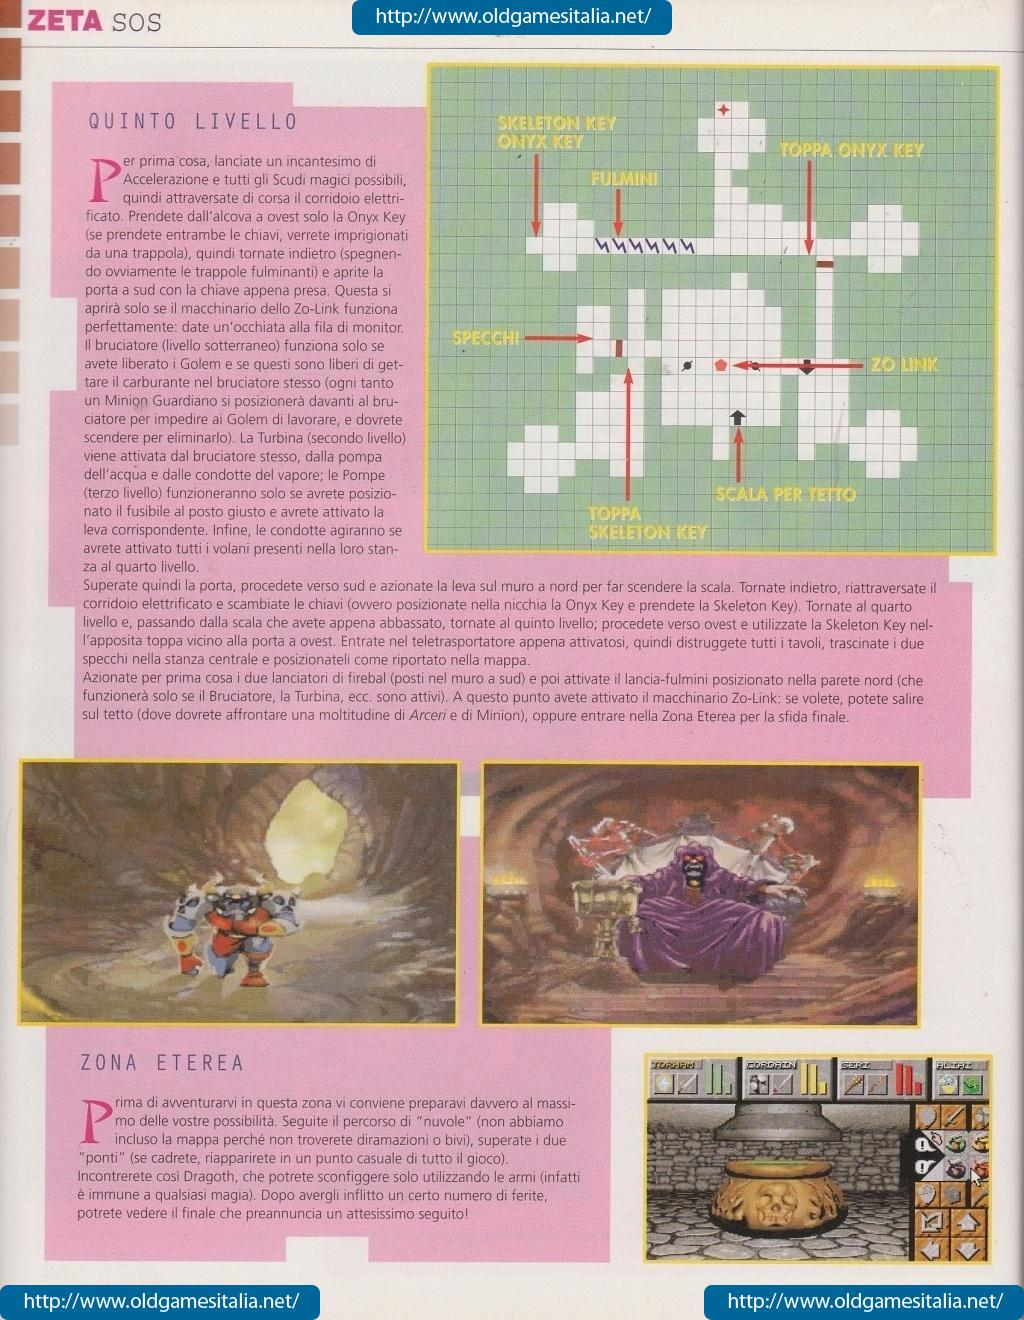 Dungeon Master II Guide published in Italian magazine 'Zeta', Issue #10 December 1995, Page 110